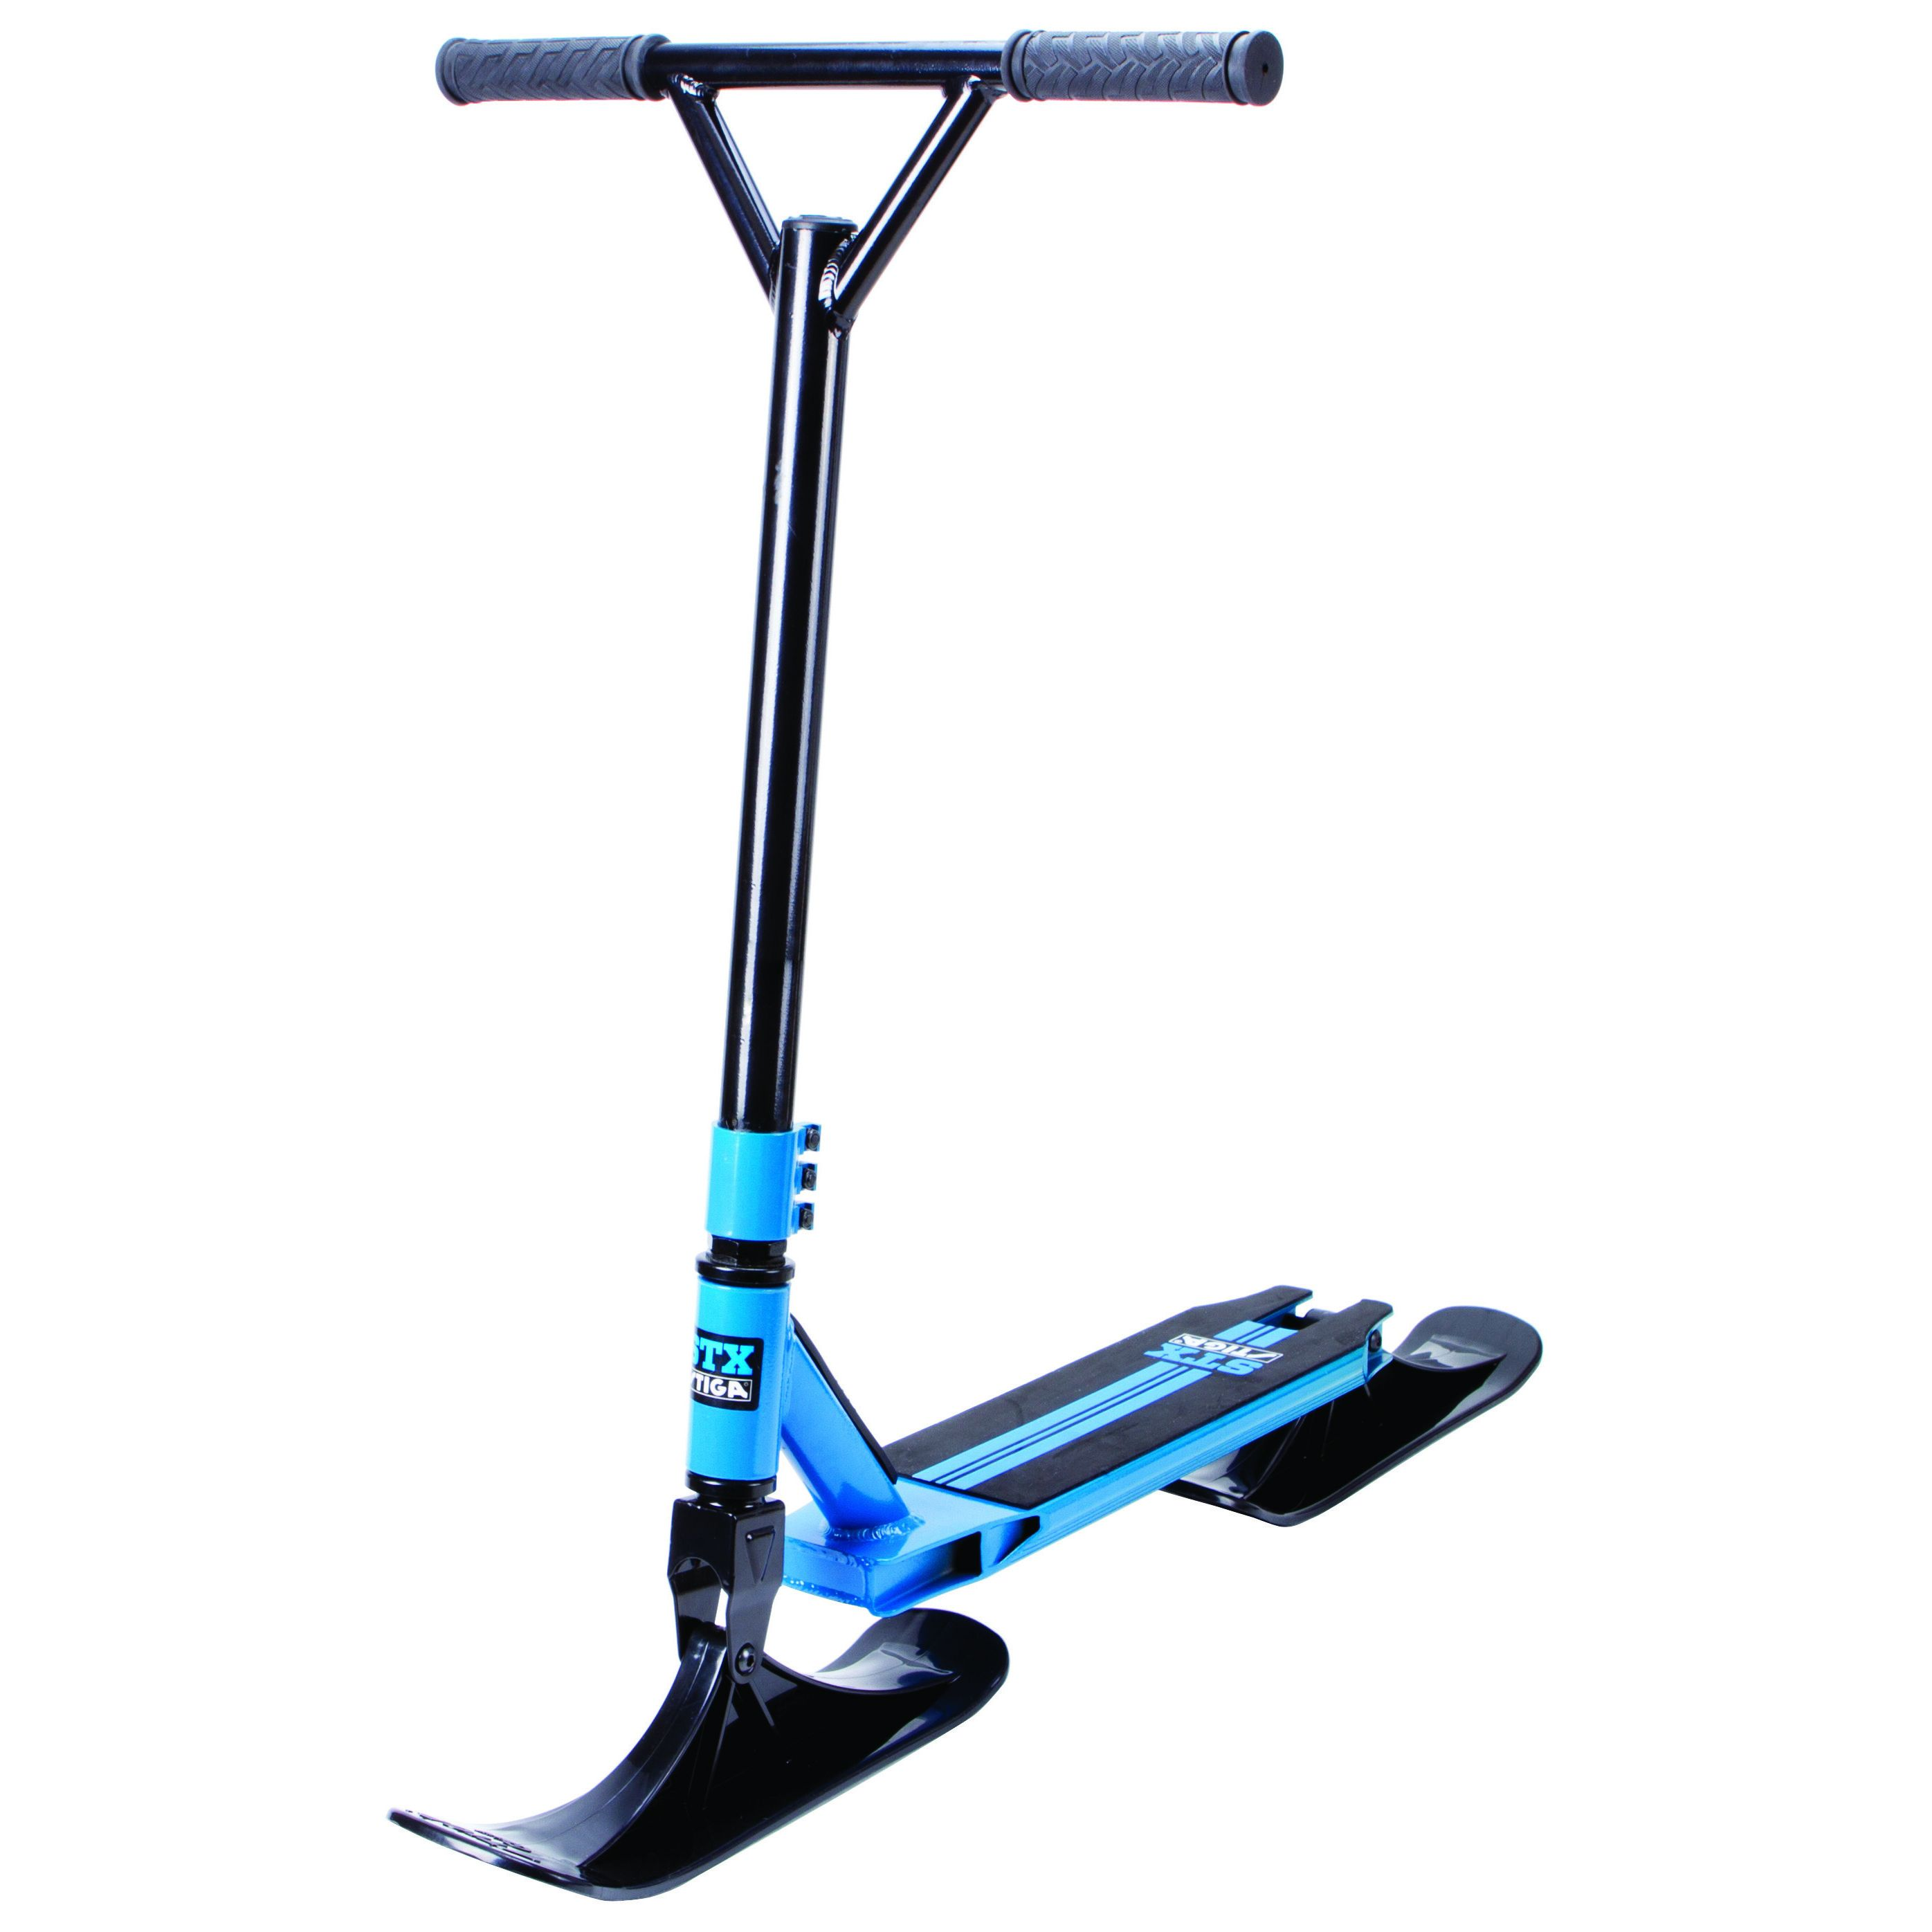 Stiga - Snow Kick STX Scooter - Black & Blue (75-1118-96)